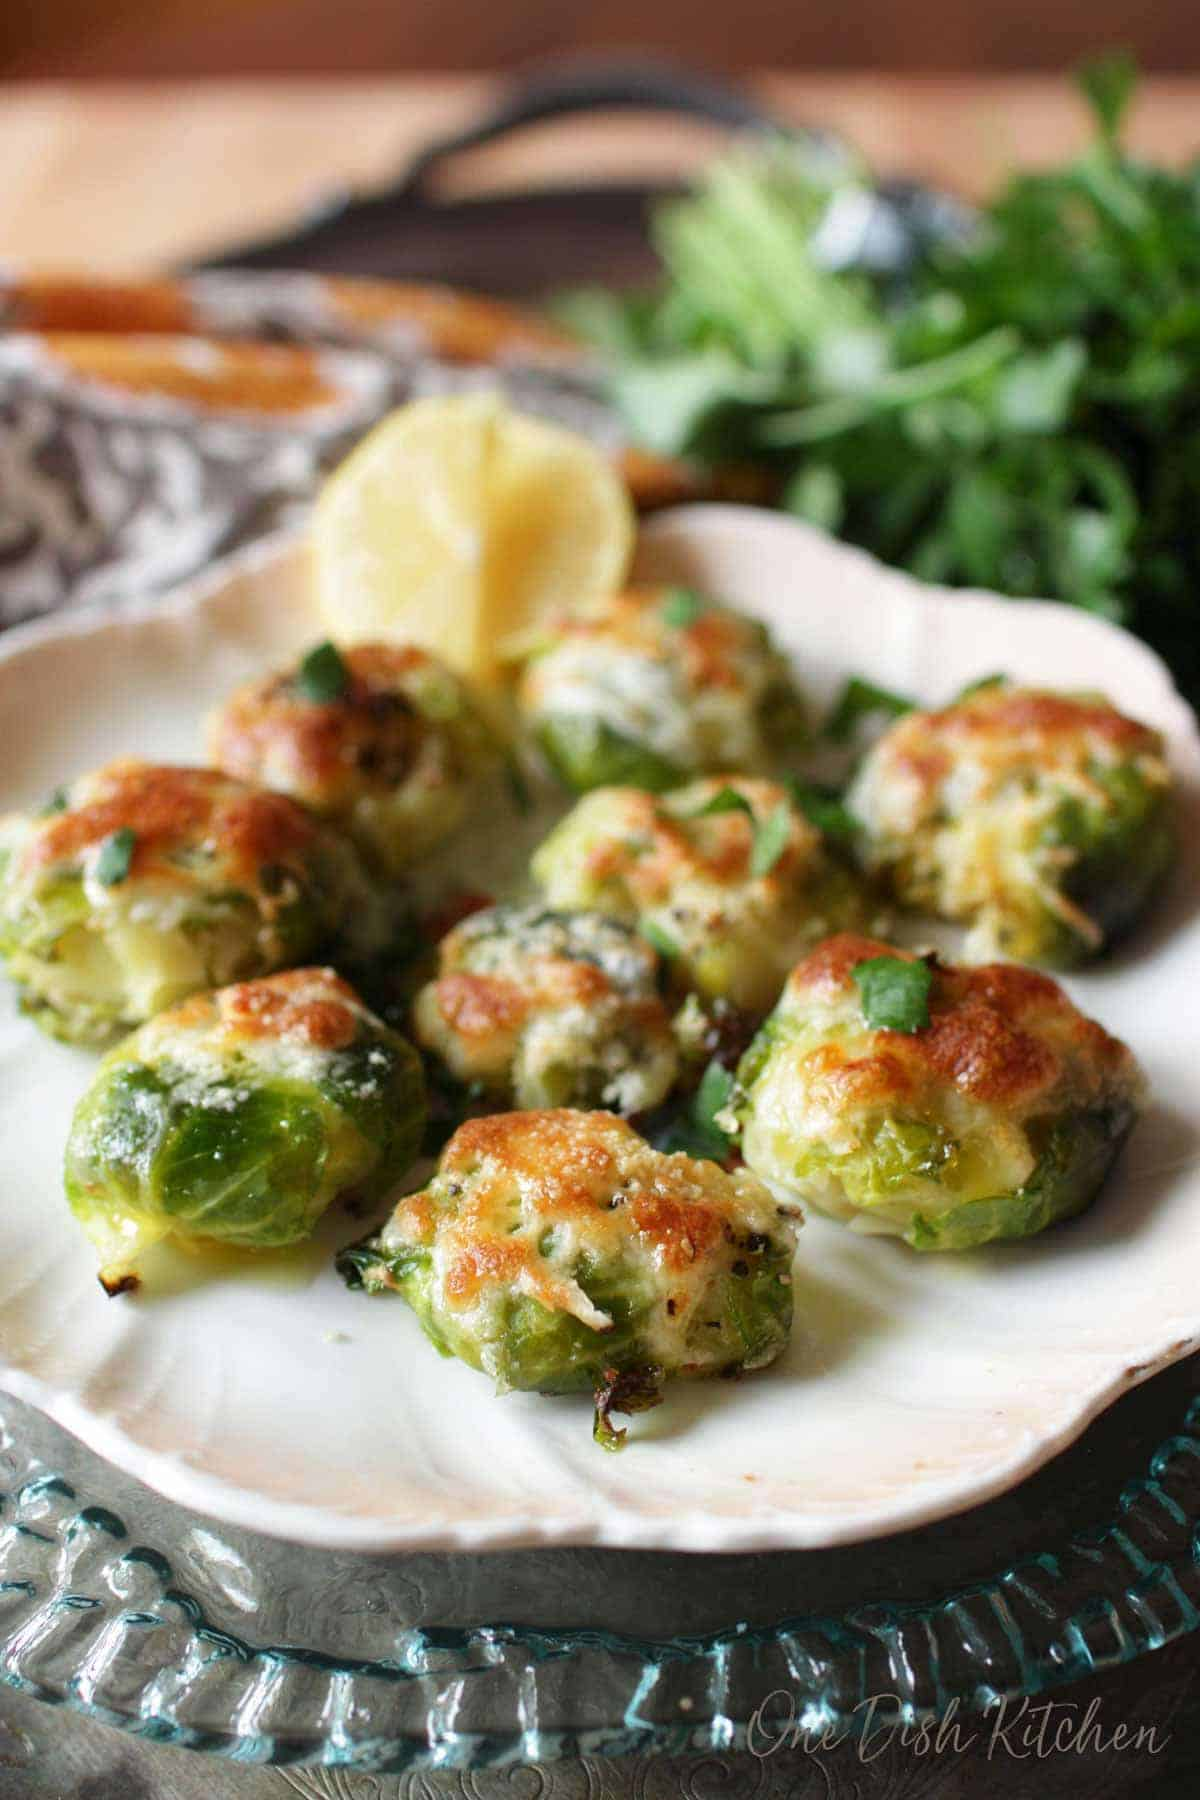 A plate of cheesy smashed brussels sprouts garnished with lemon slices